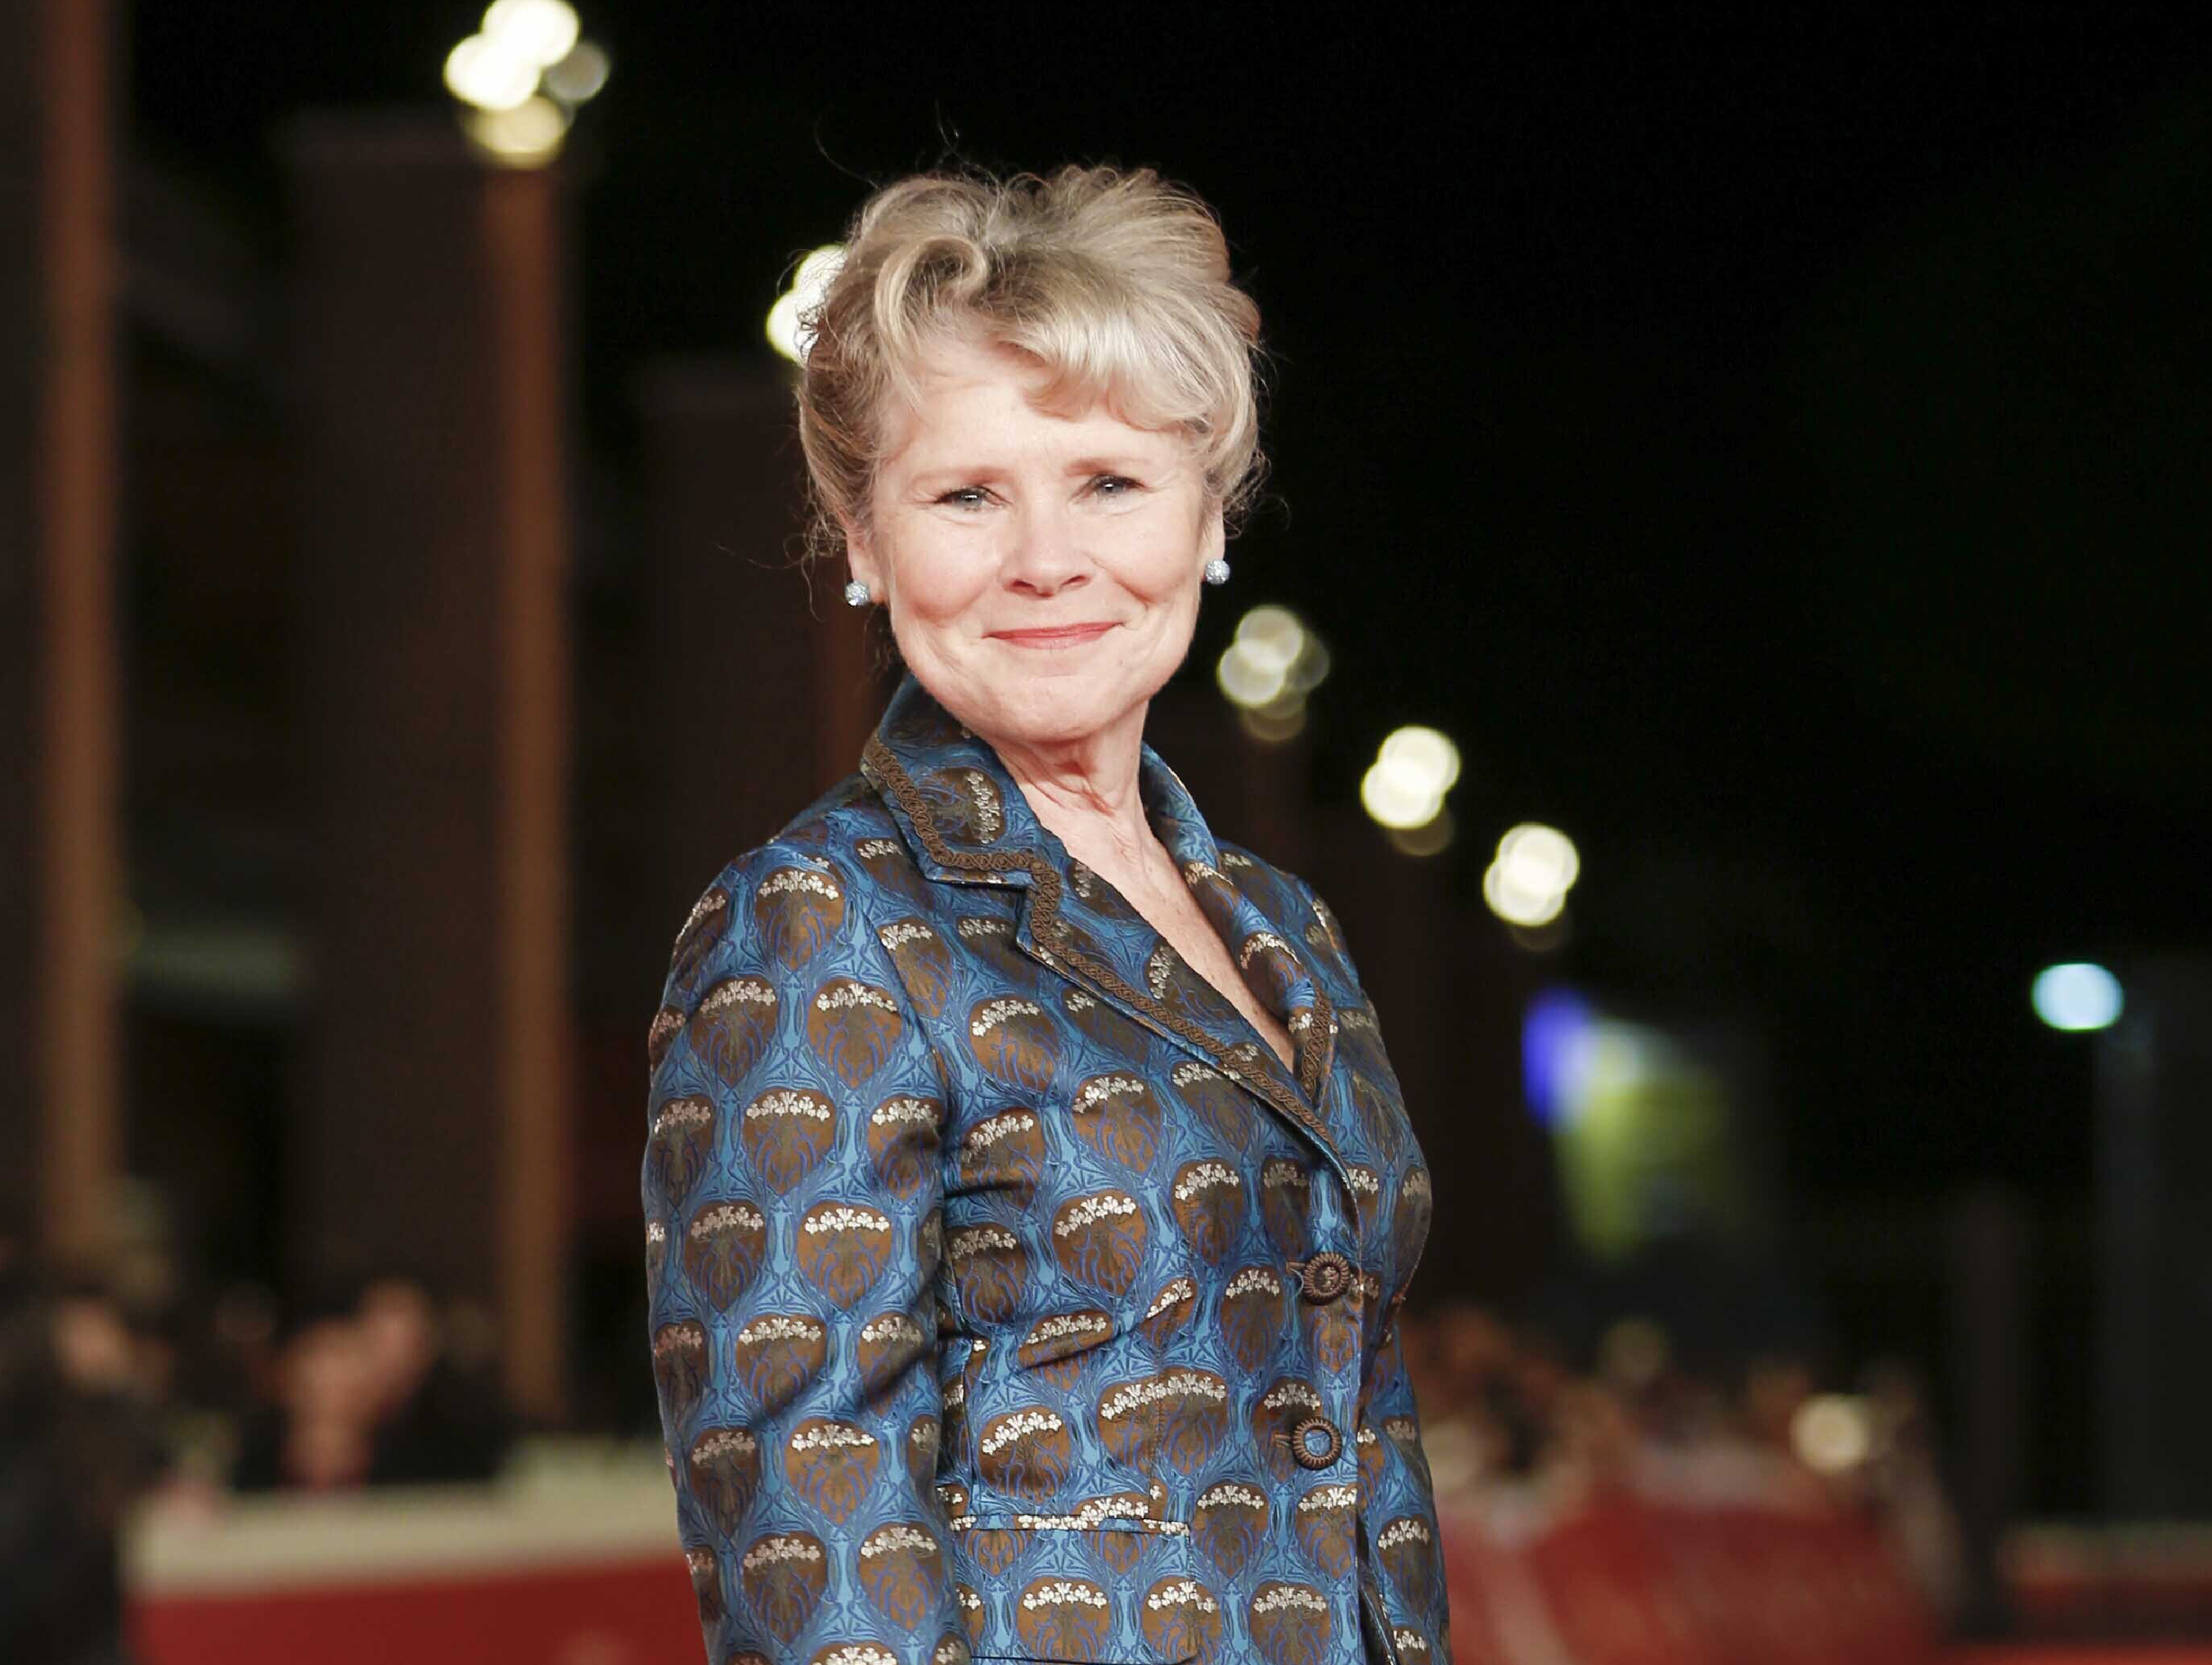 Actress Imelda Staunton walks on the red carpet for the movie  Downton Abbey  at the Rome Film Fest in Rome on Oct. 19, 2019. Staunton has been tapped to be the last actress to play Queen Elizabeth II in the Netflix series  The Crown.